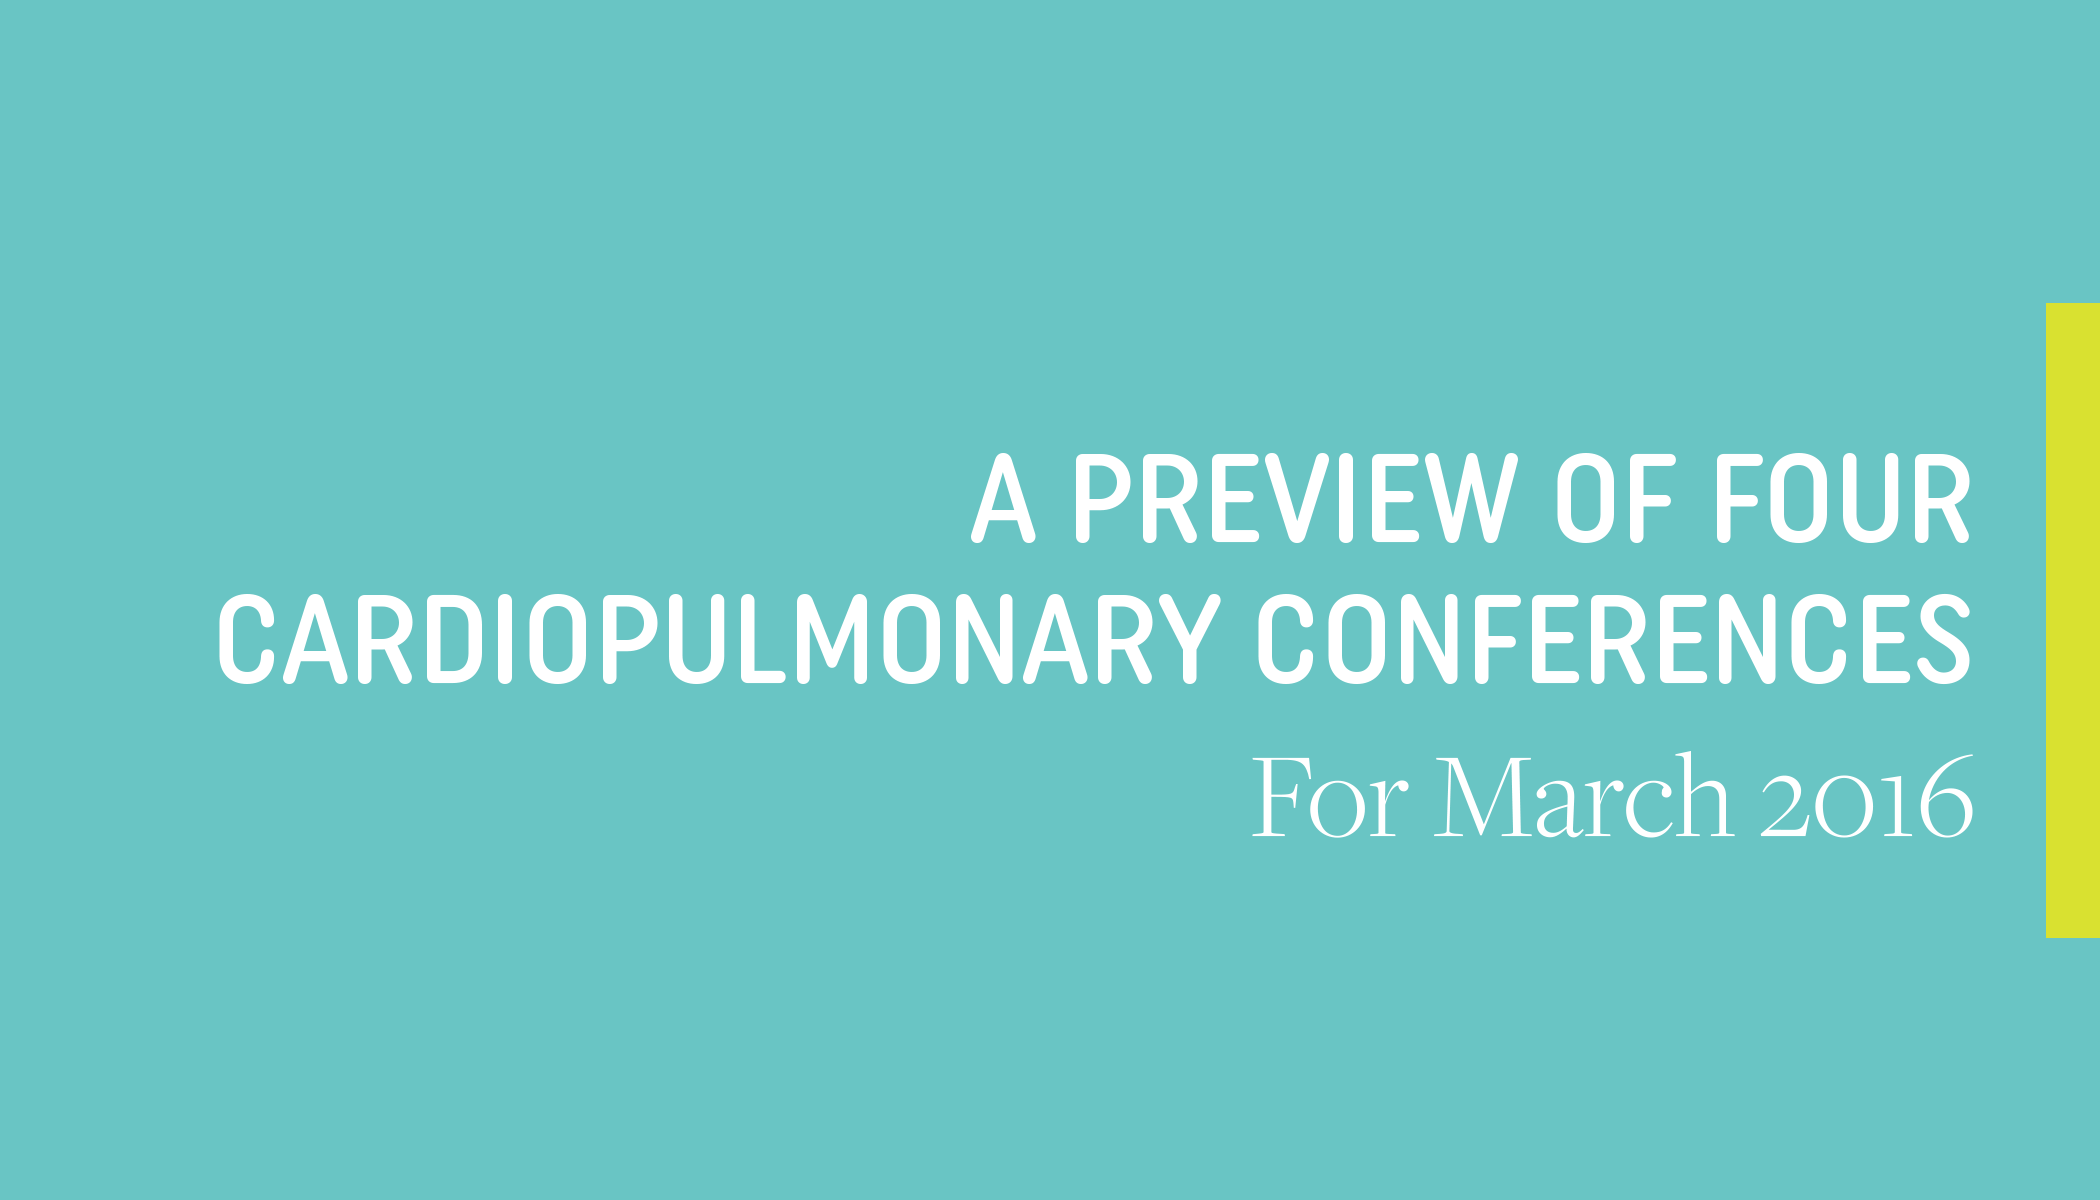 Don't Miss LSI at These Four Cardiac and Pulmonary Conferences in March